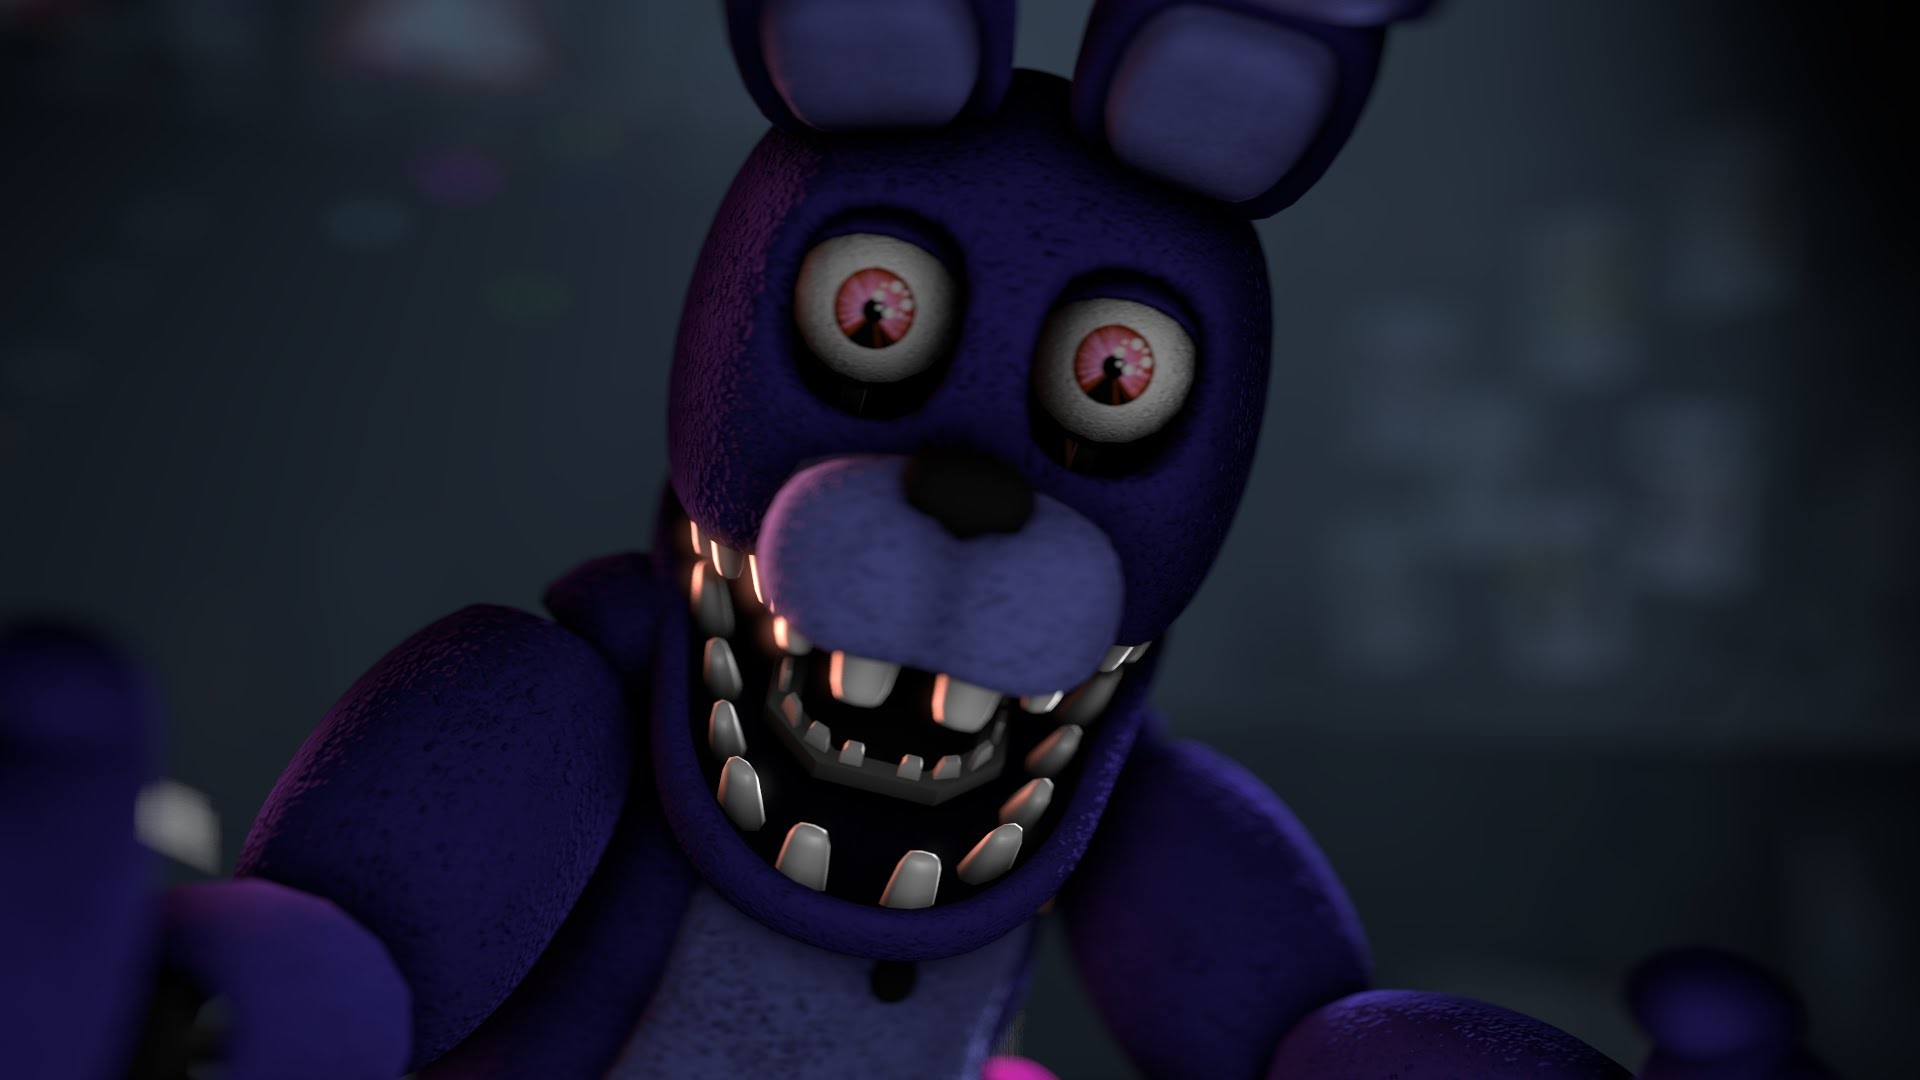 [FNAF SFM] Unwithered Bonnie Jumpscare (New Model) – YouTube